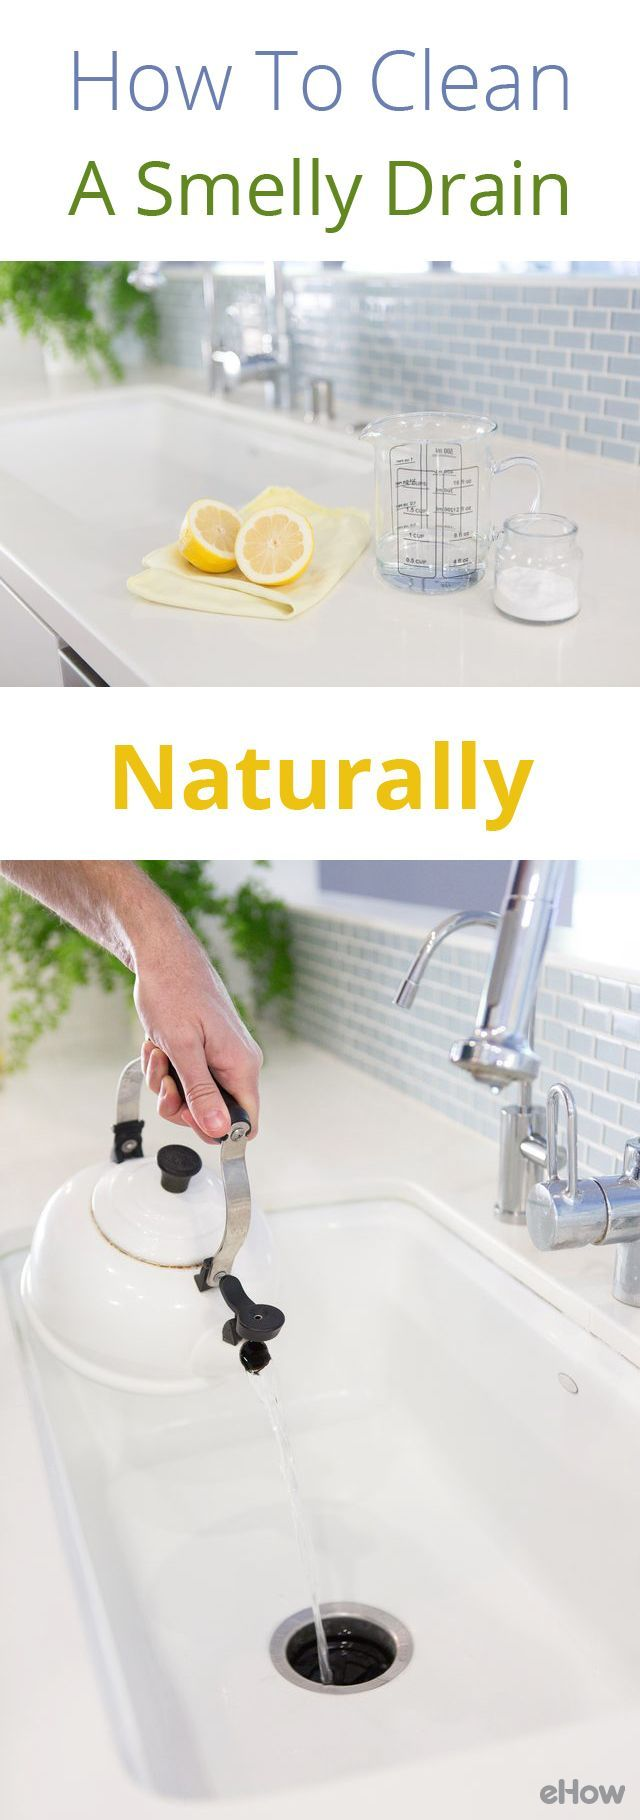 How to naturally clean a smelly drain all handy tips - How to keep a bathroom smelling fresh ...